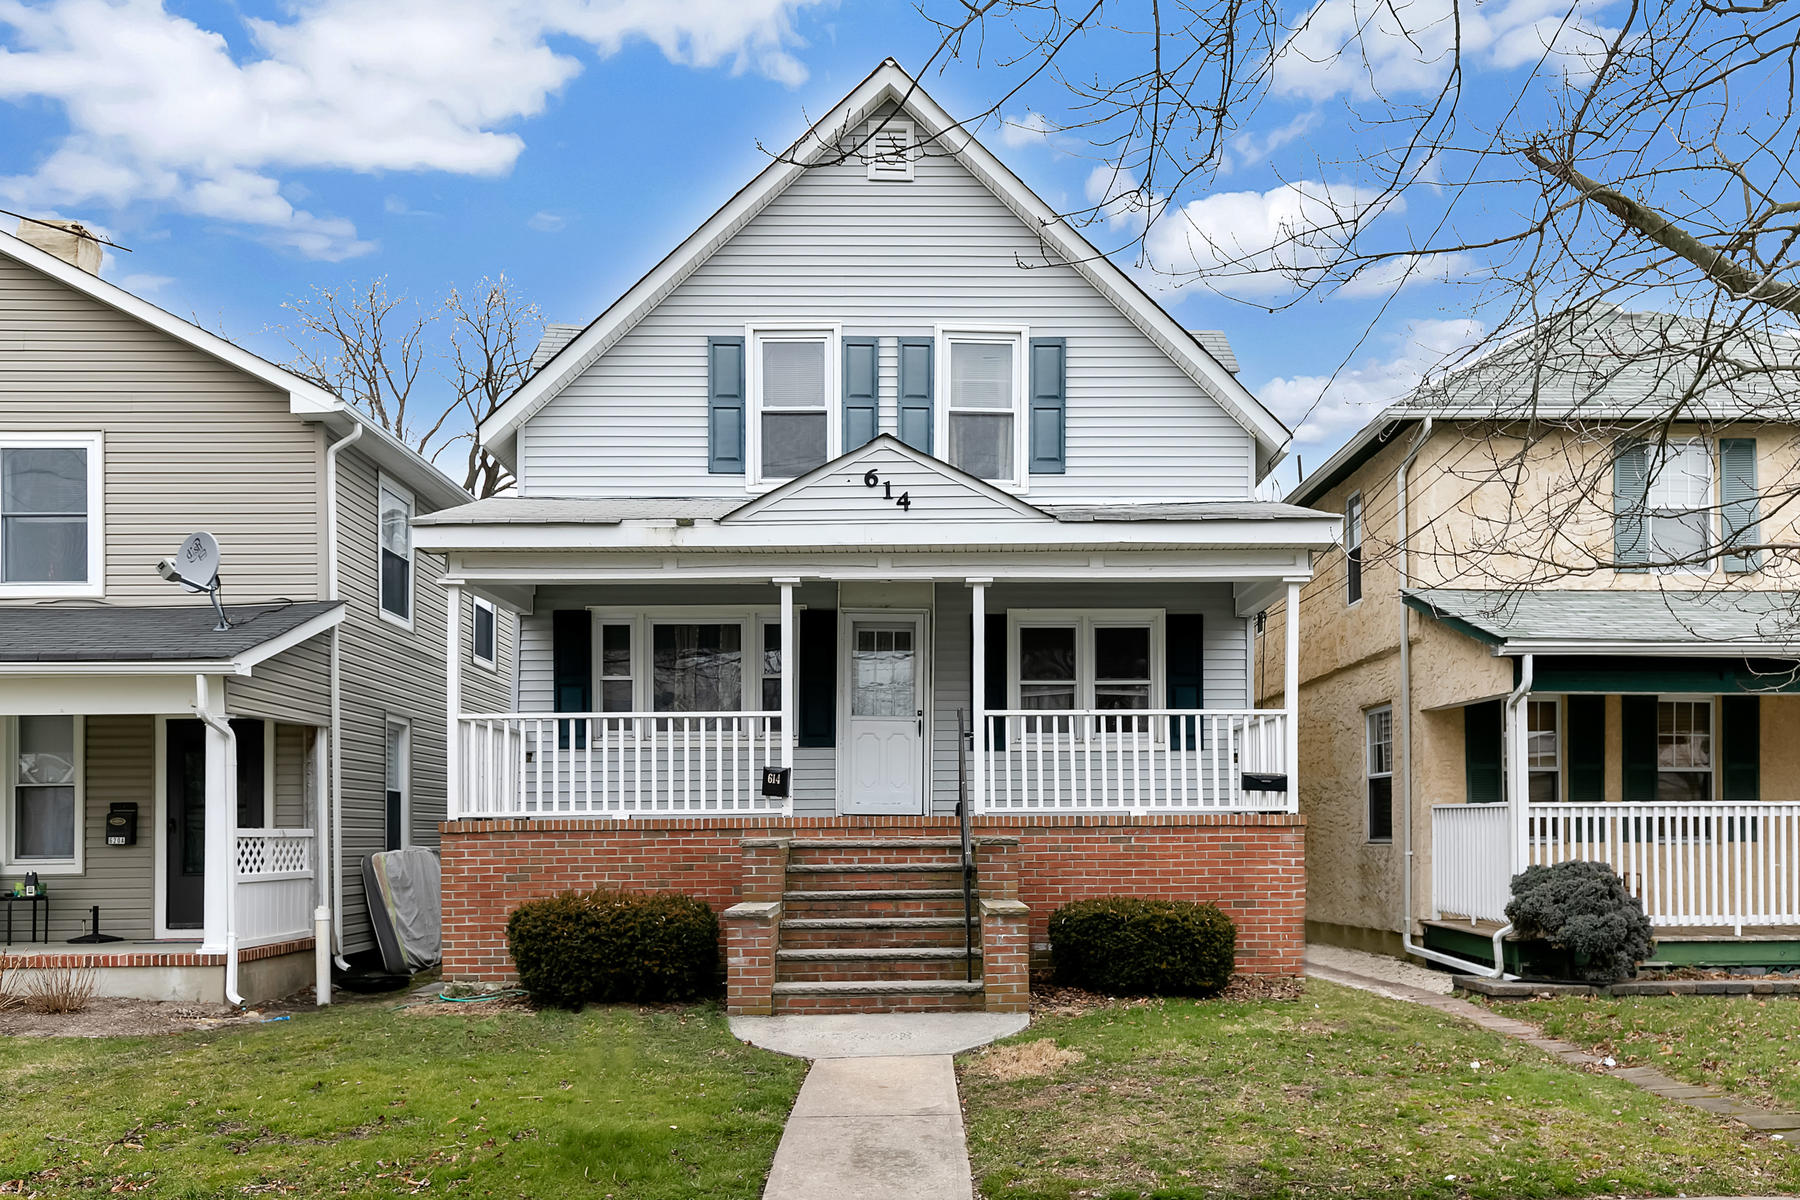 Multi-Family Home for Sale at Great Investment 614 11th Ave, Belmar, New Jersey 07719 United States